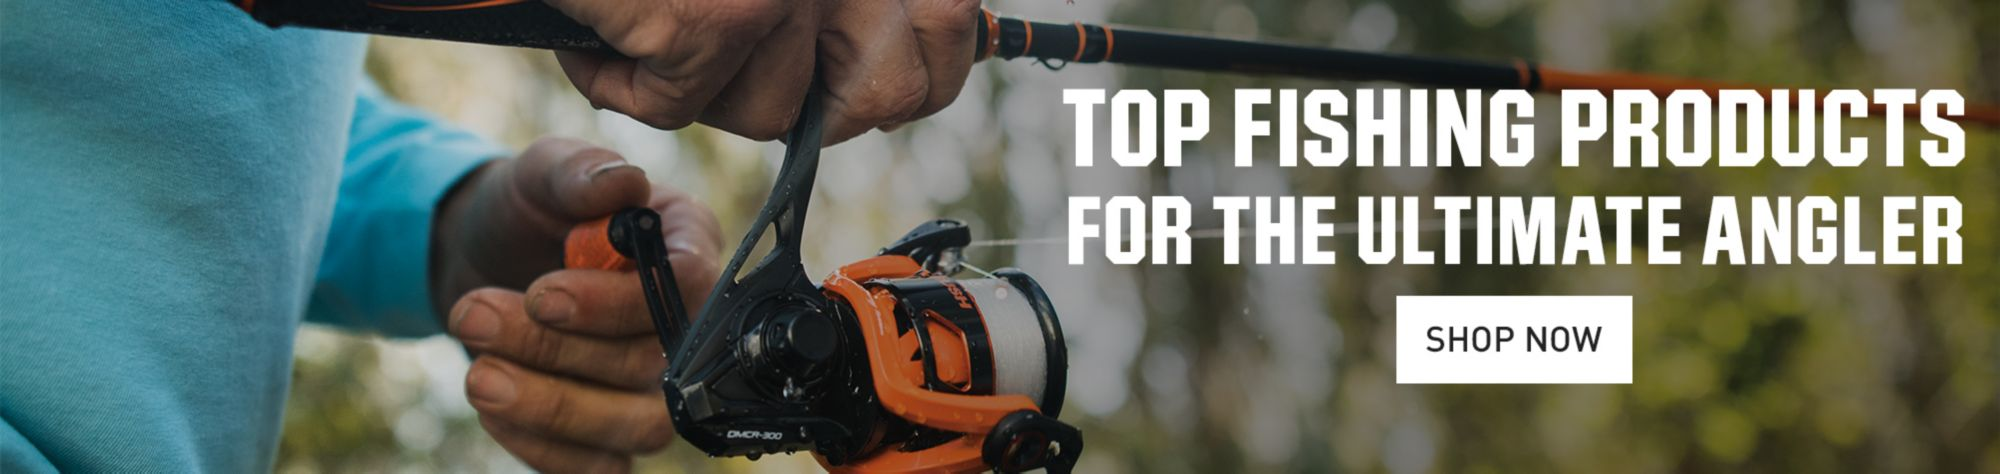 TOP TRENDING FISHING GEAR SHOP NOW